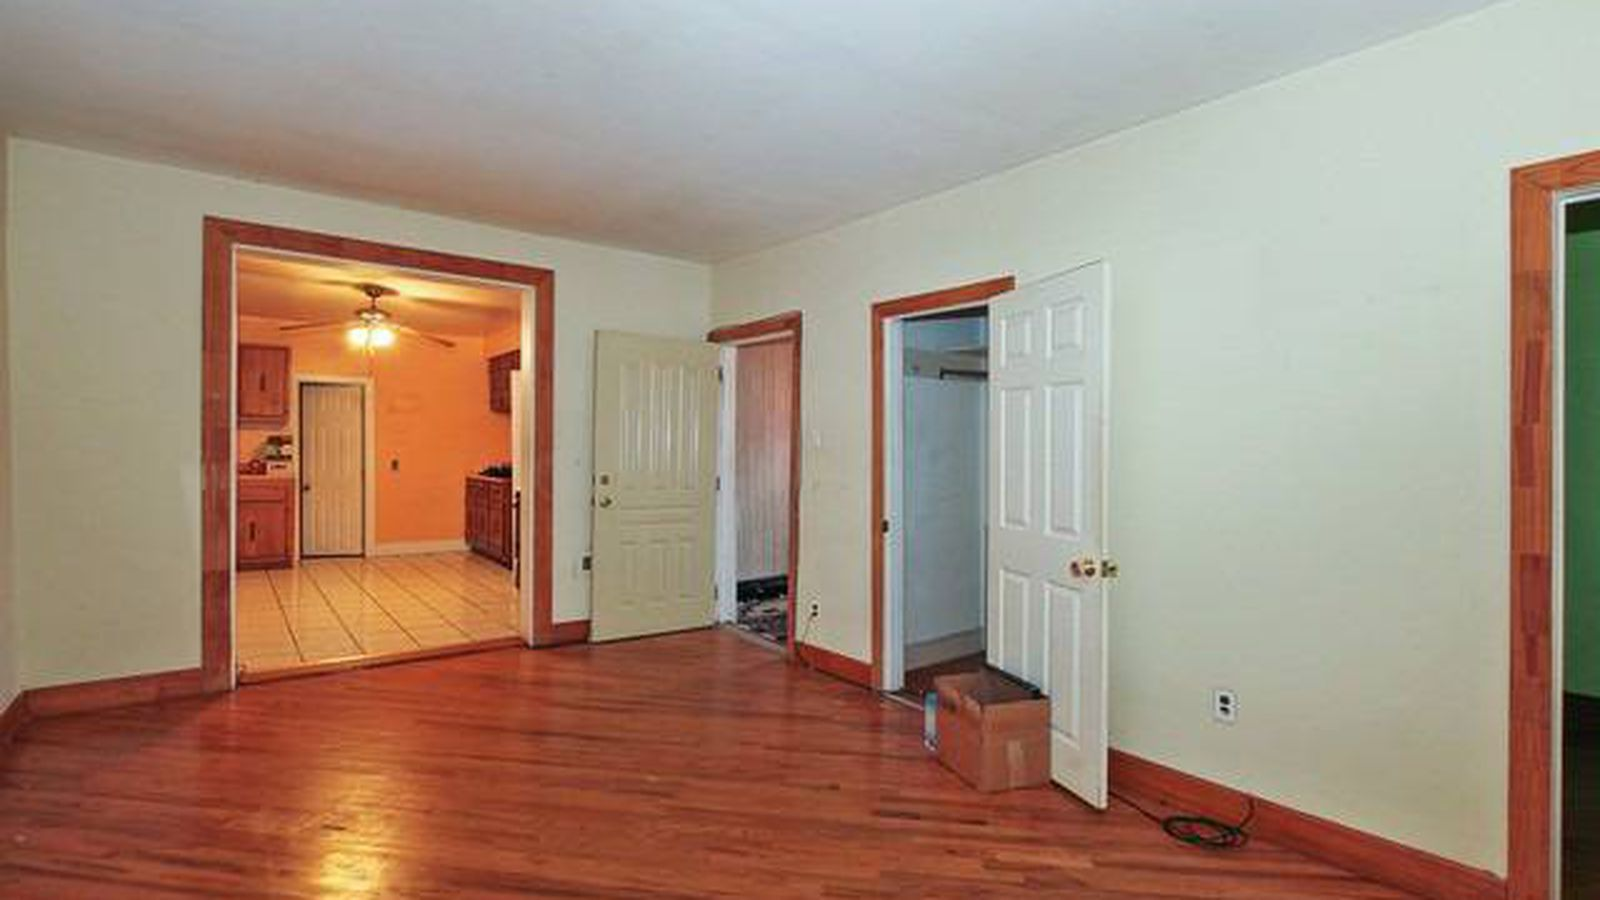 two bedroom in bridgeport rents for only 700 curbed chicago